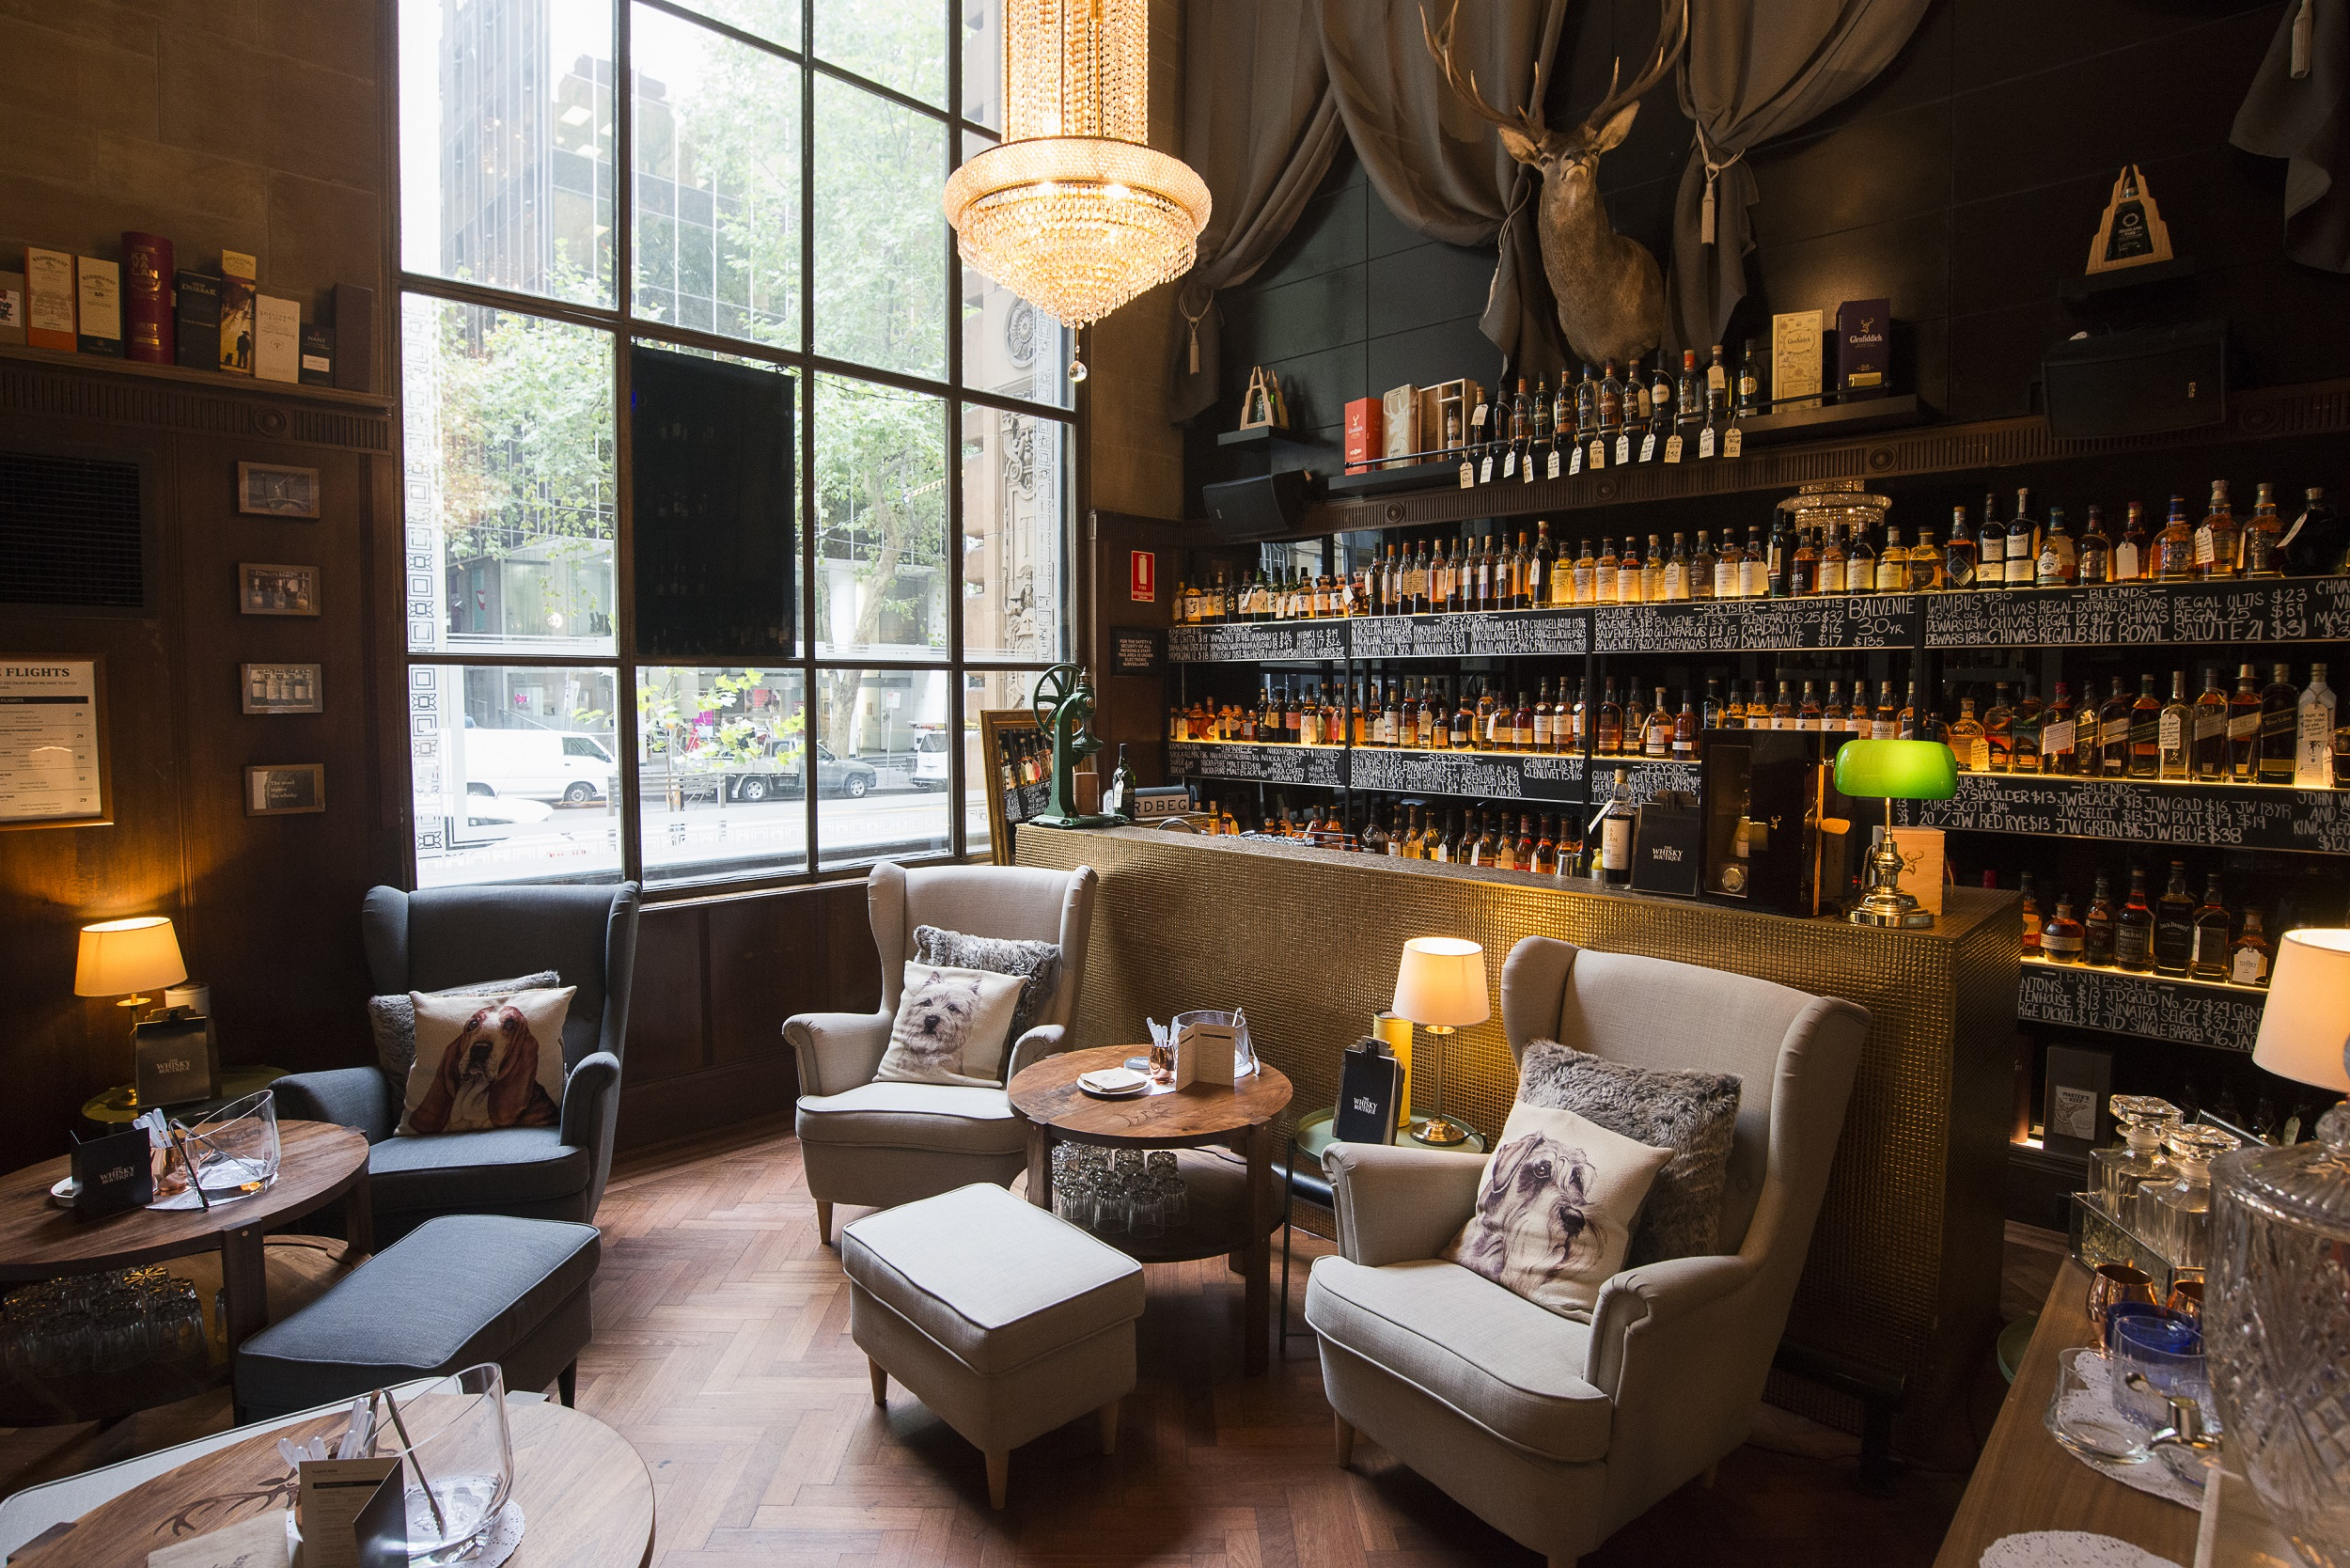 The Whisky Boutique Space